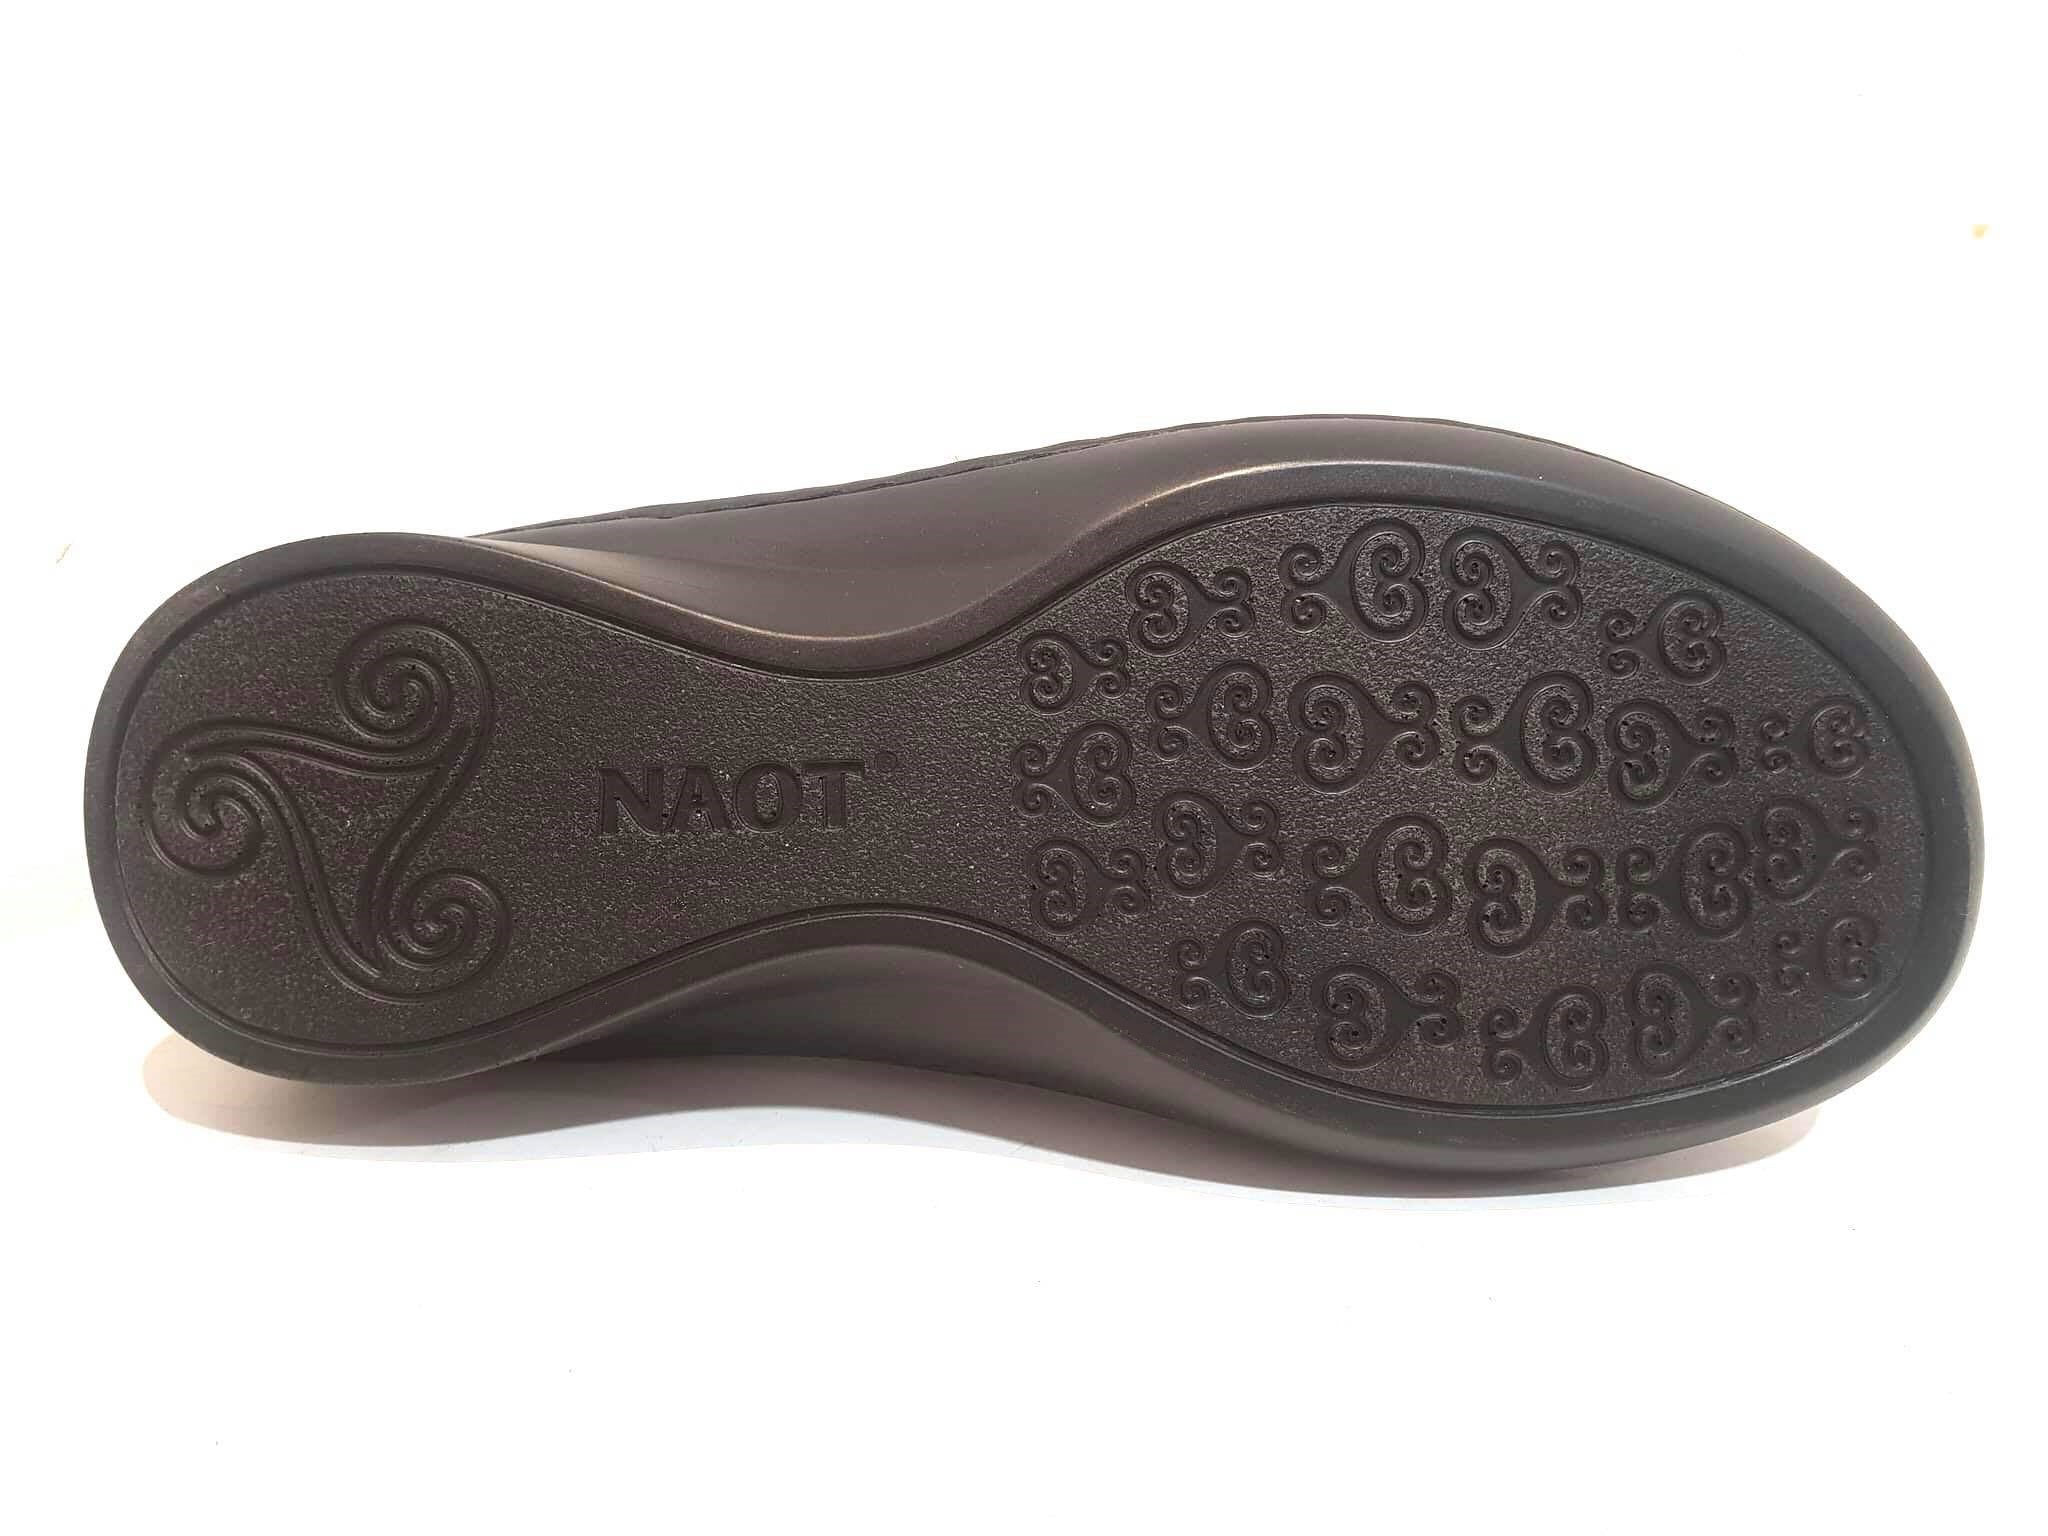 Naot Conga Black Combo Leather Velcro Mary Janes Ladies Shoes Made In Israel